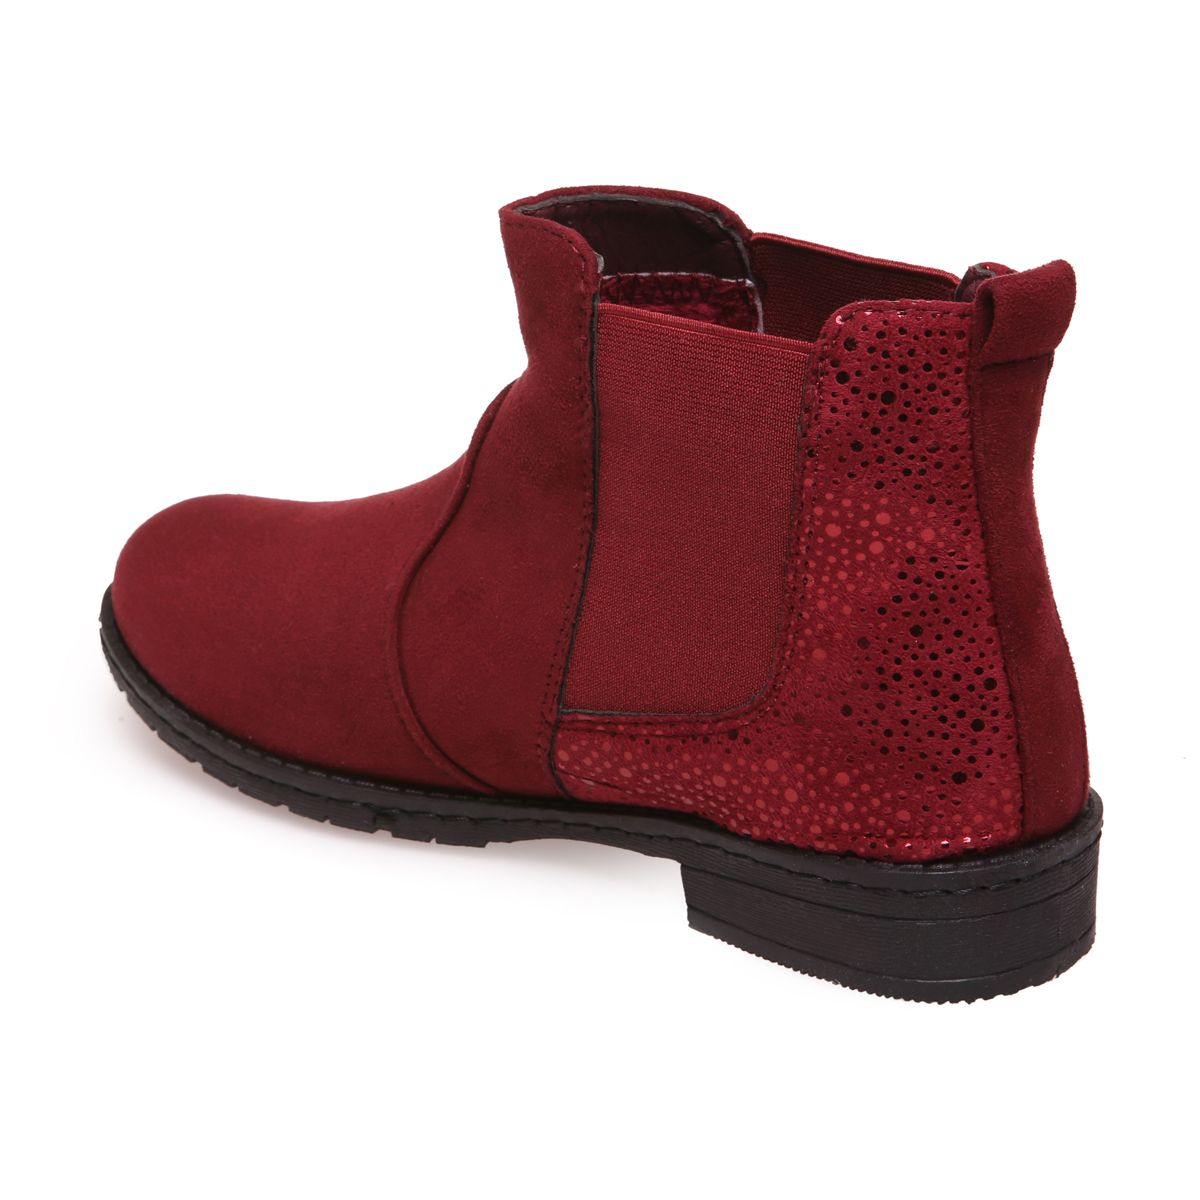 bottines chelsea rouges talon scintillant pas cheres